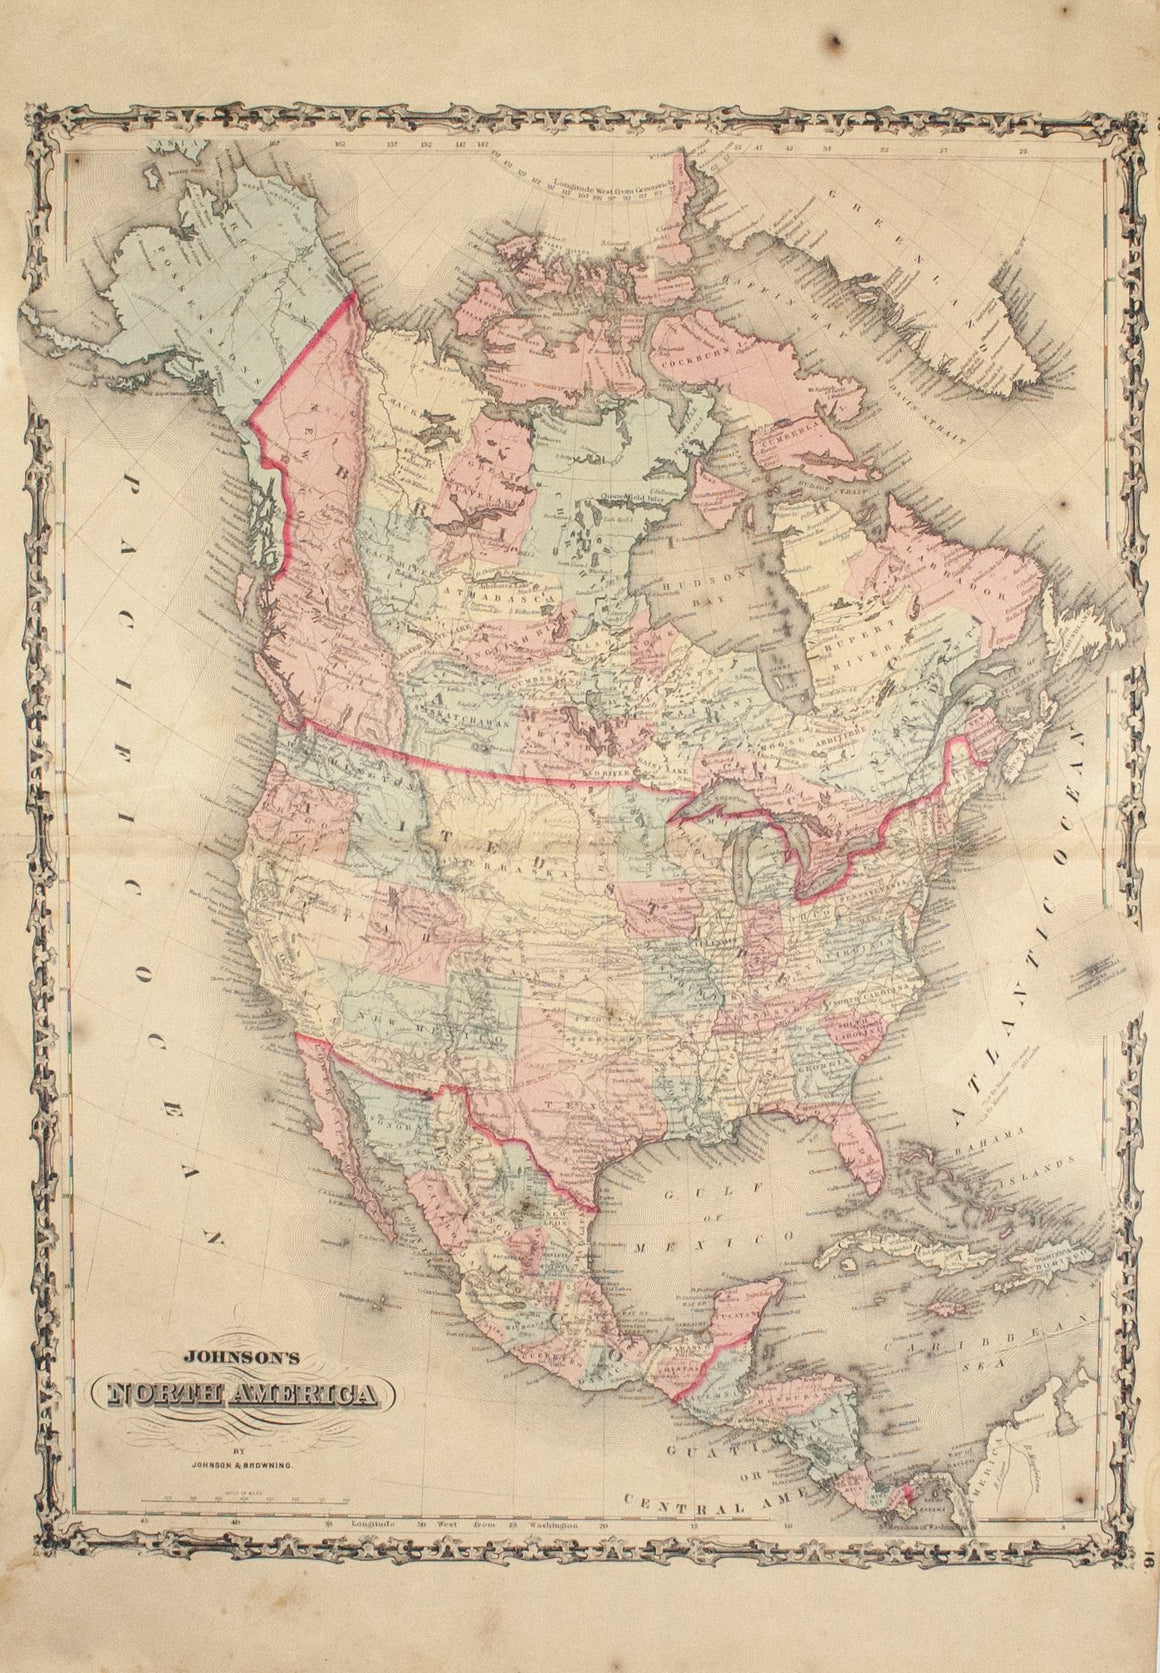 1860 North America - Johnson